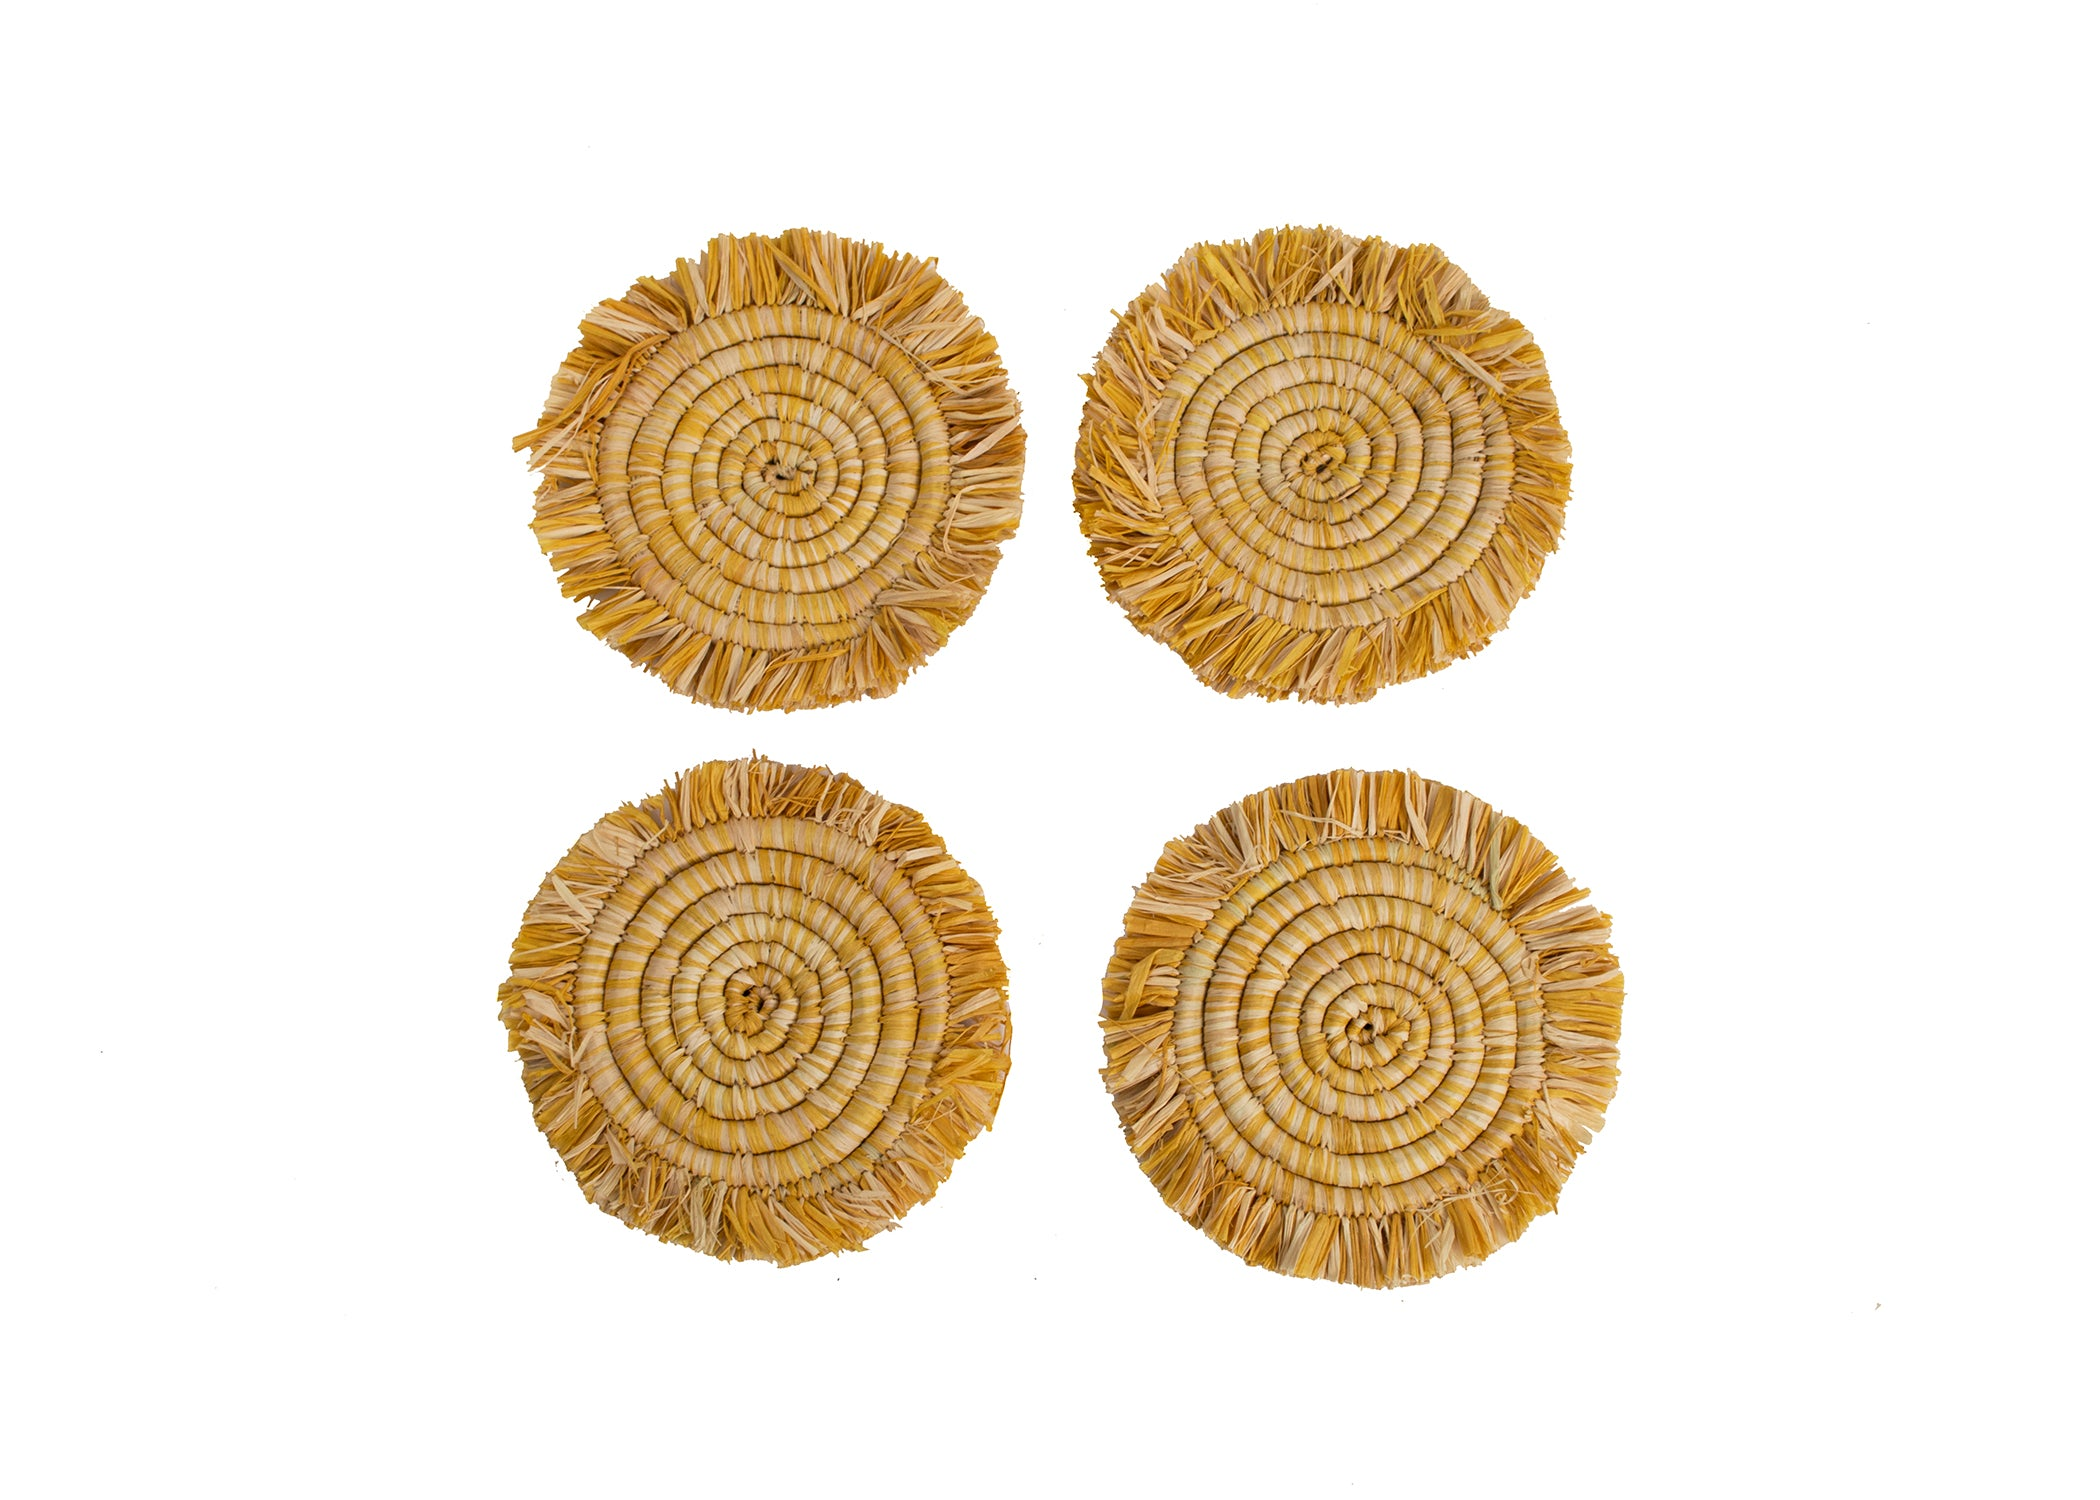 Mustard Fringed Heathered Coasters - KAZI - Artisan made high quality home decor and wall art